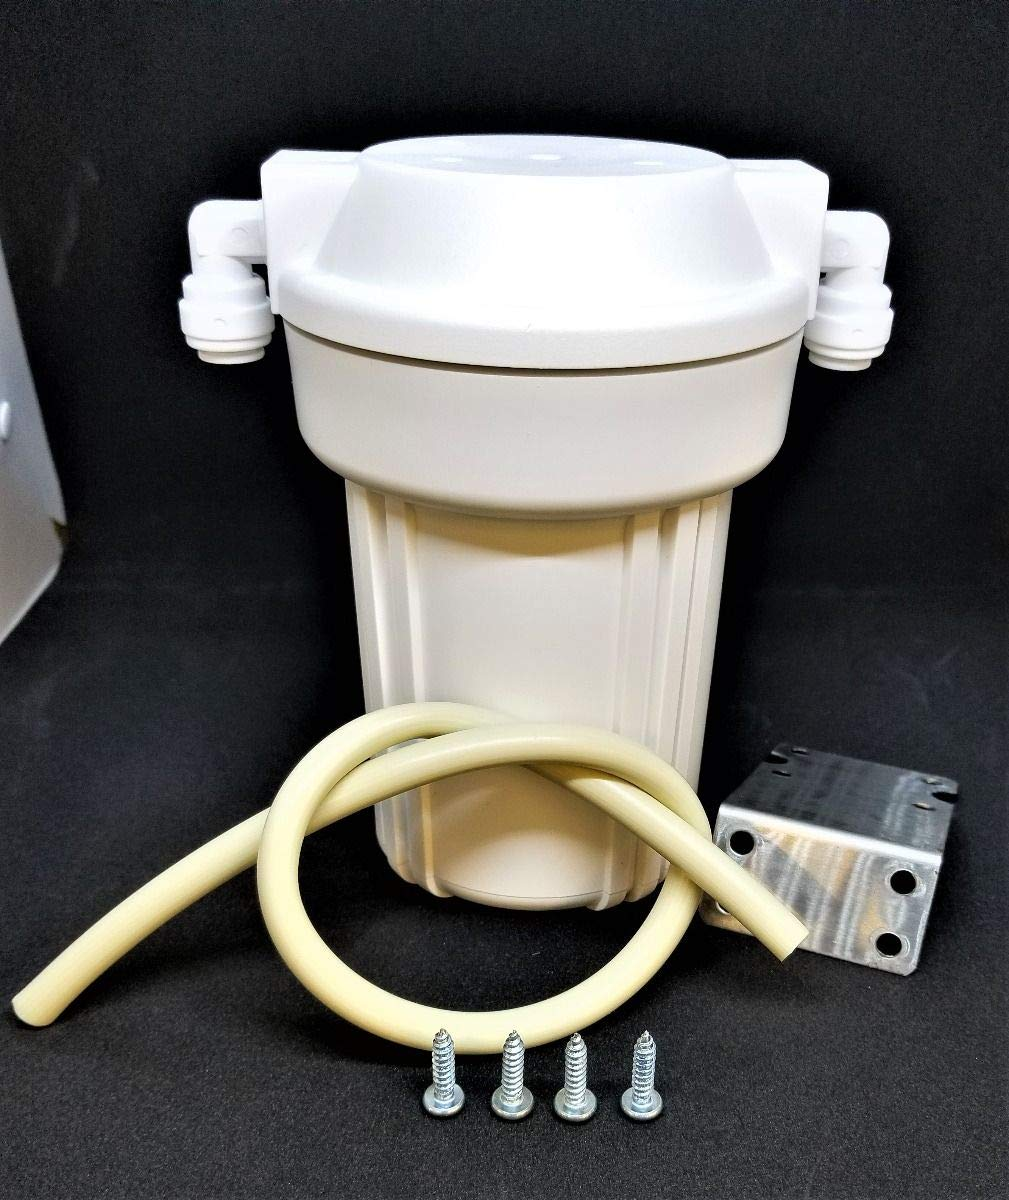 mistcooling Commercial Filter for Mist Pumps - 10 '' by mistcooling